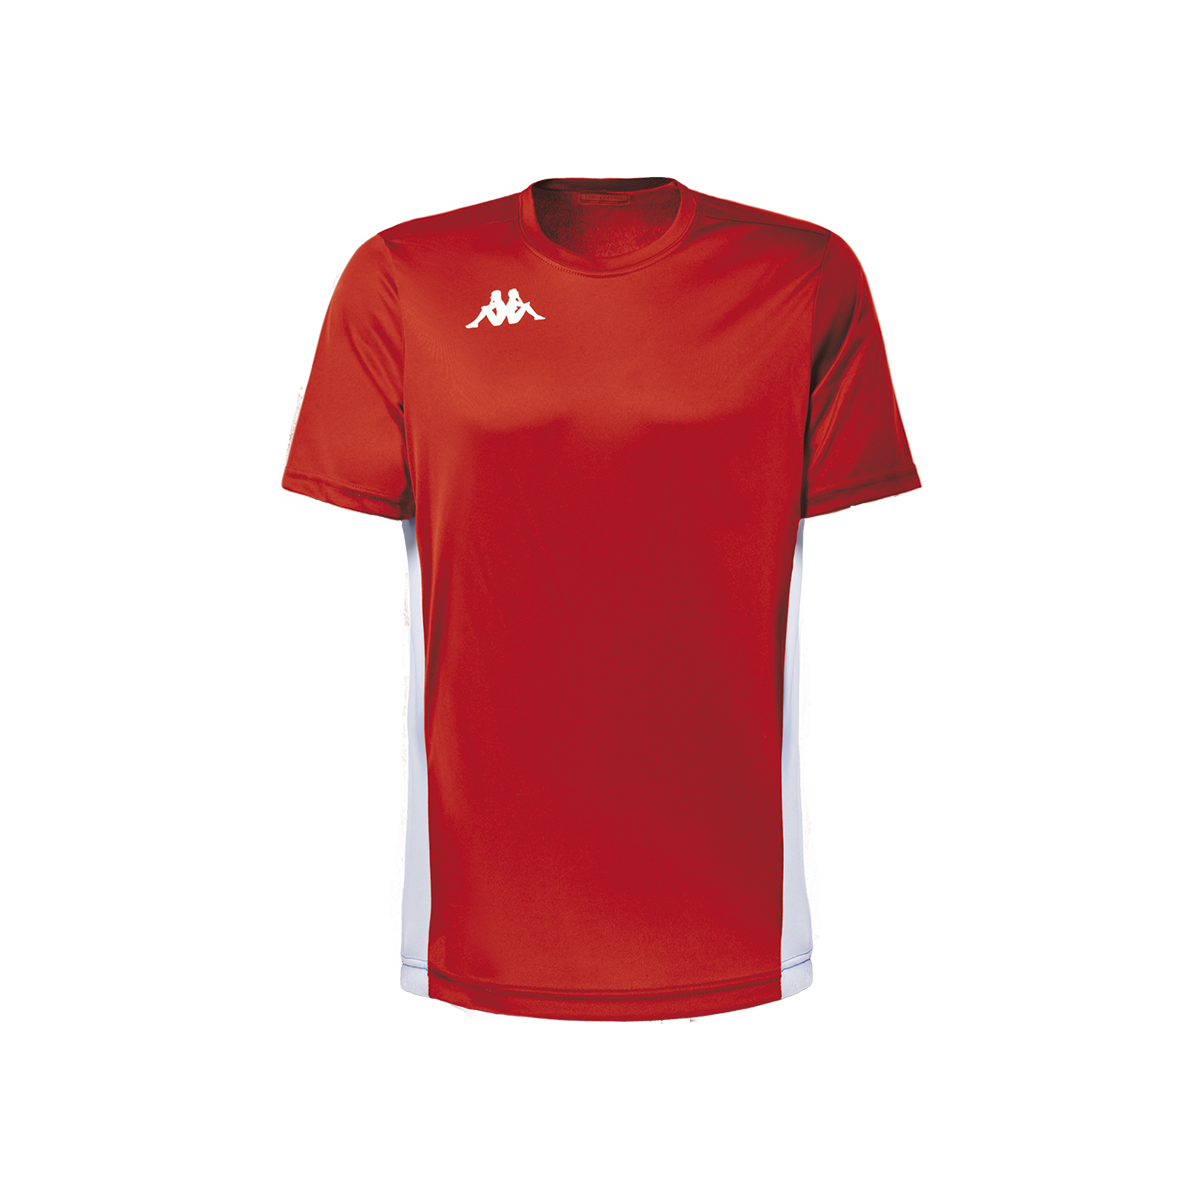 Kappa Wenet Match Shirt SS - Red